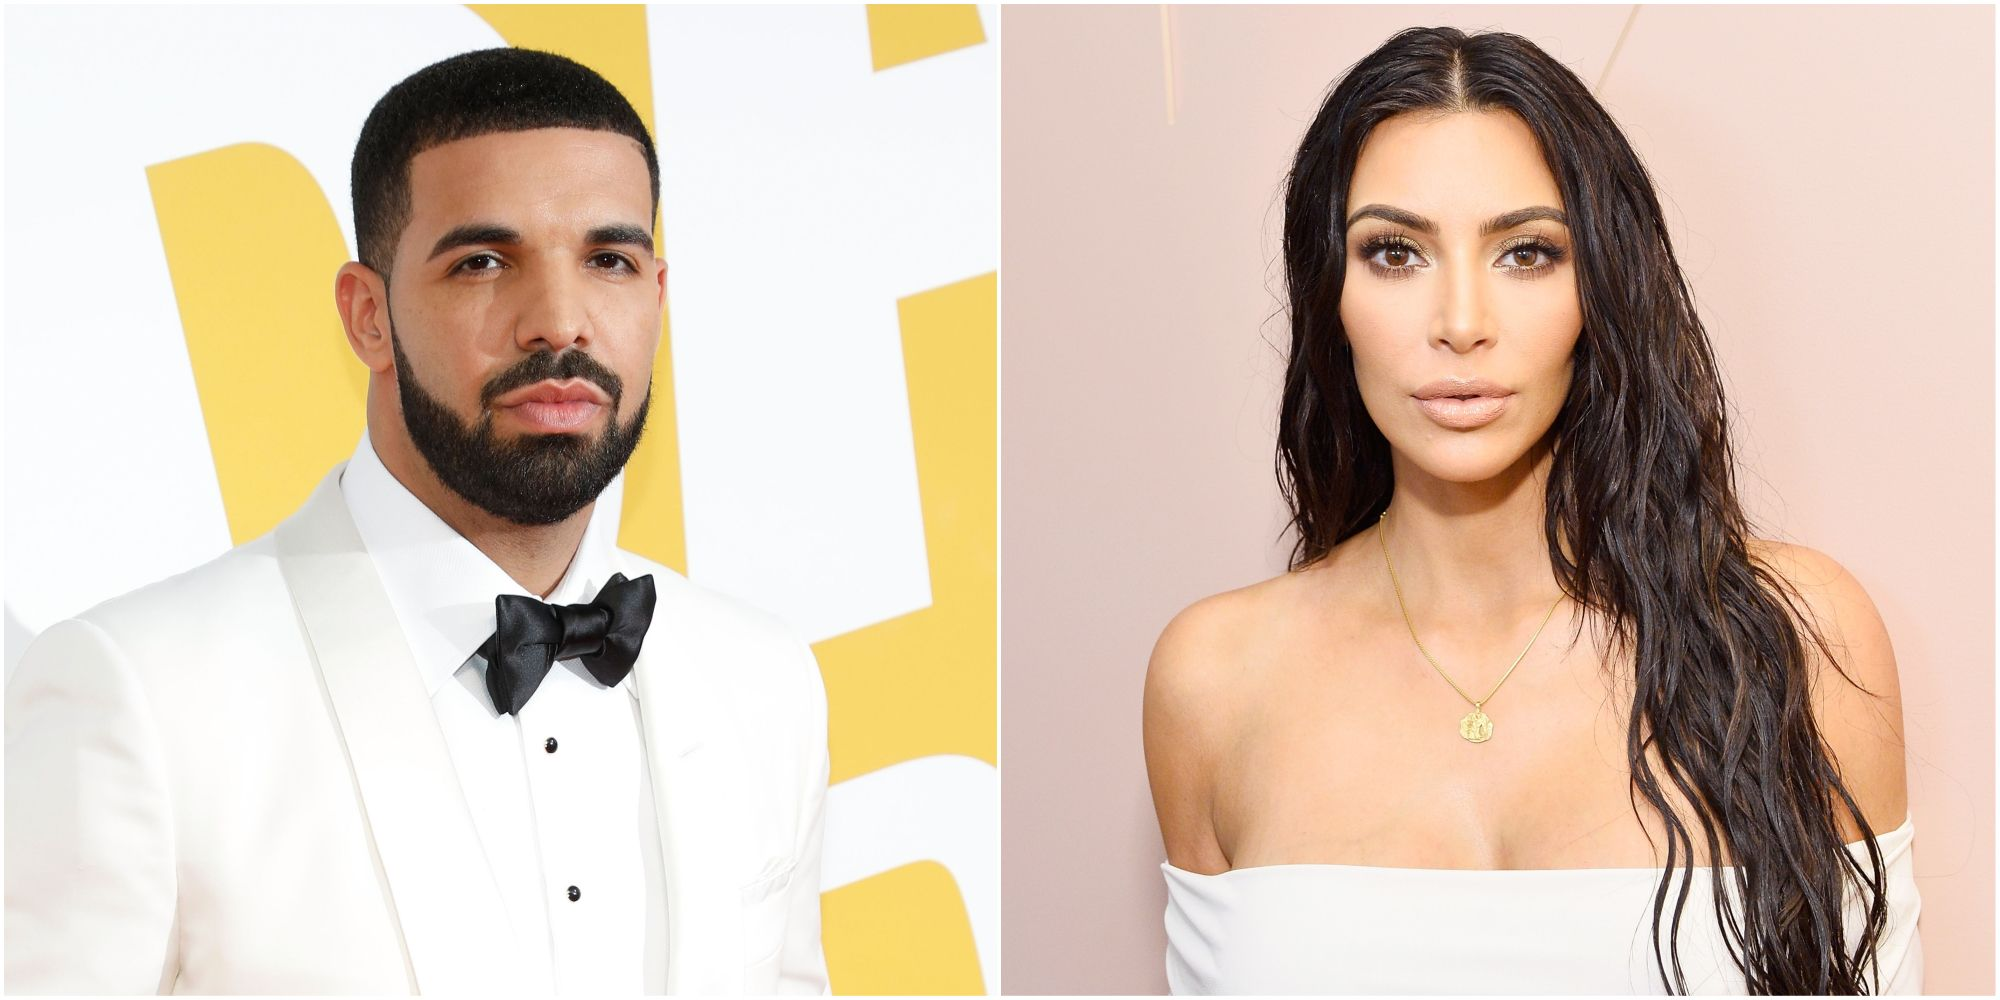 Who are the kardashians dating 2019 meme